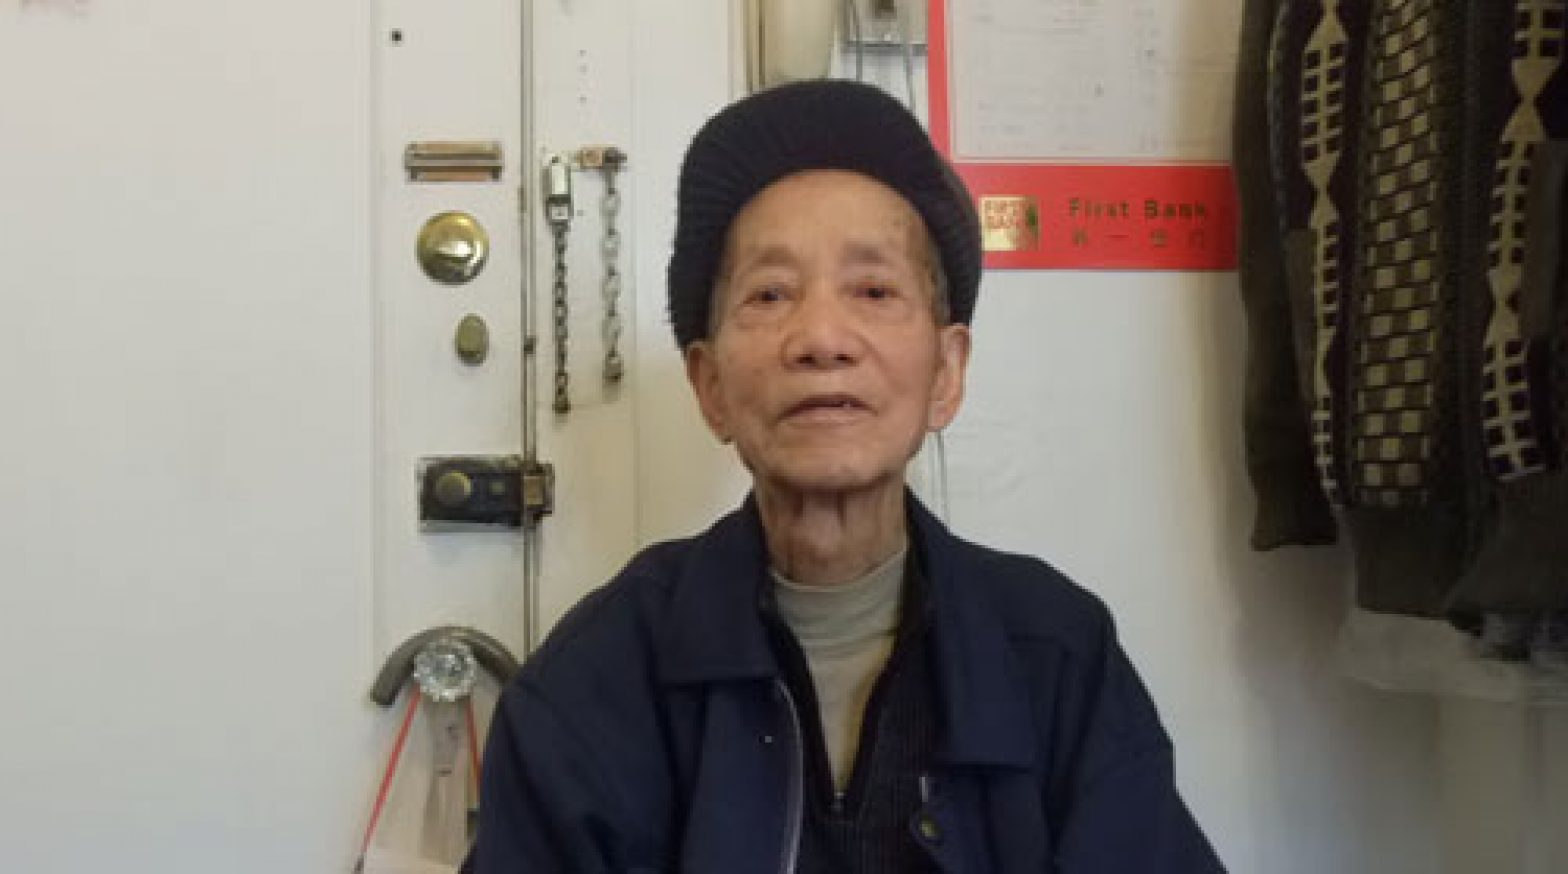 chinatown-death-plunge-at-age-91-triggers-worries-about-isolated-elders.jpeg